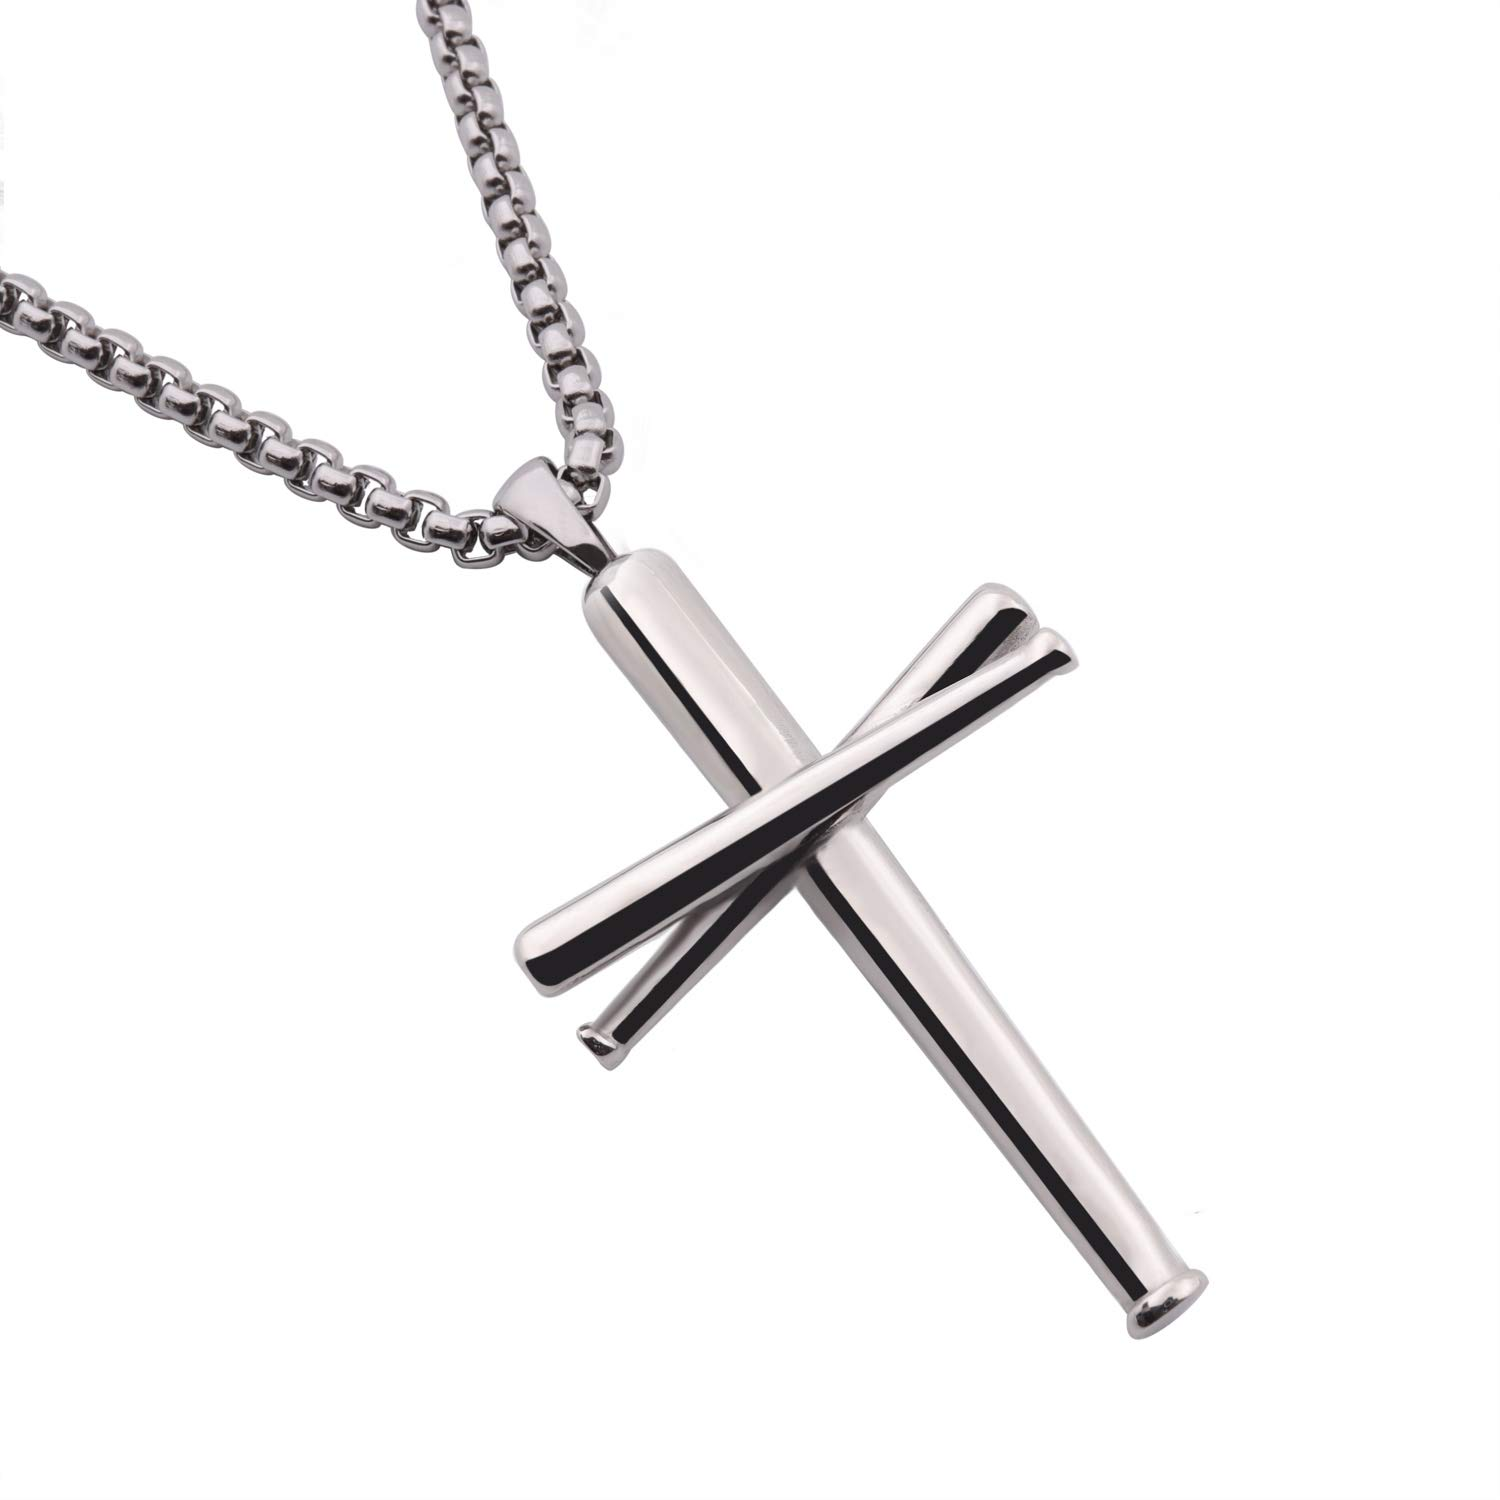 RMOYI Baseball Bats Necklace Athletes Pendant Chain,Sport Stainless Steel Necklaces for Men Women Boys Girls,Small Silver 18 Inches